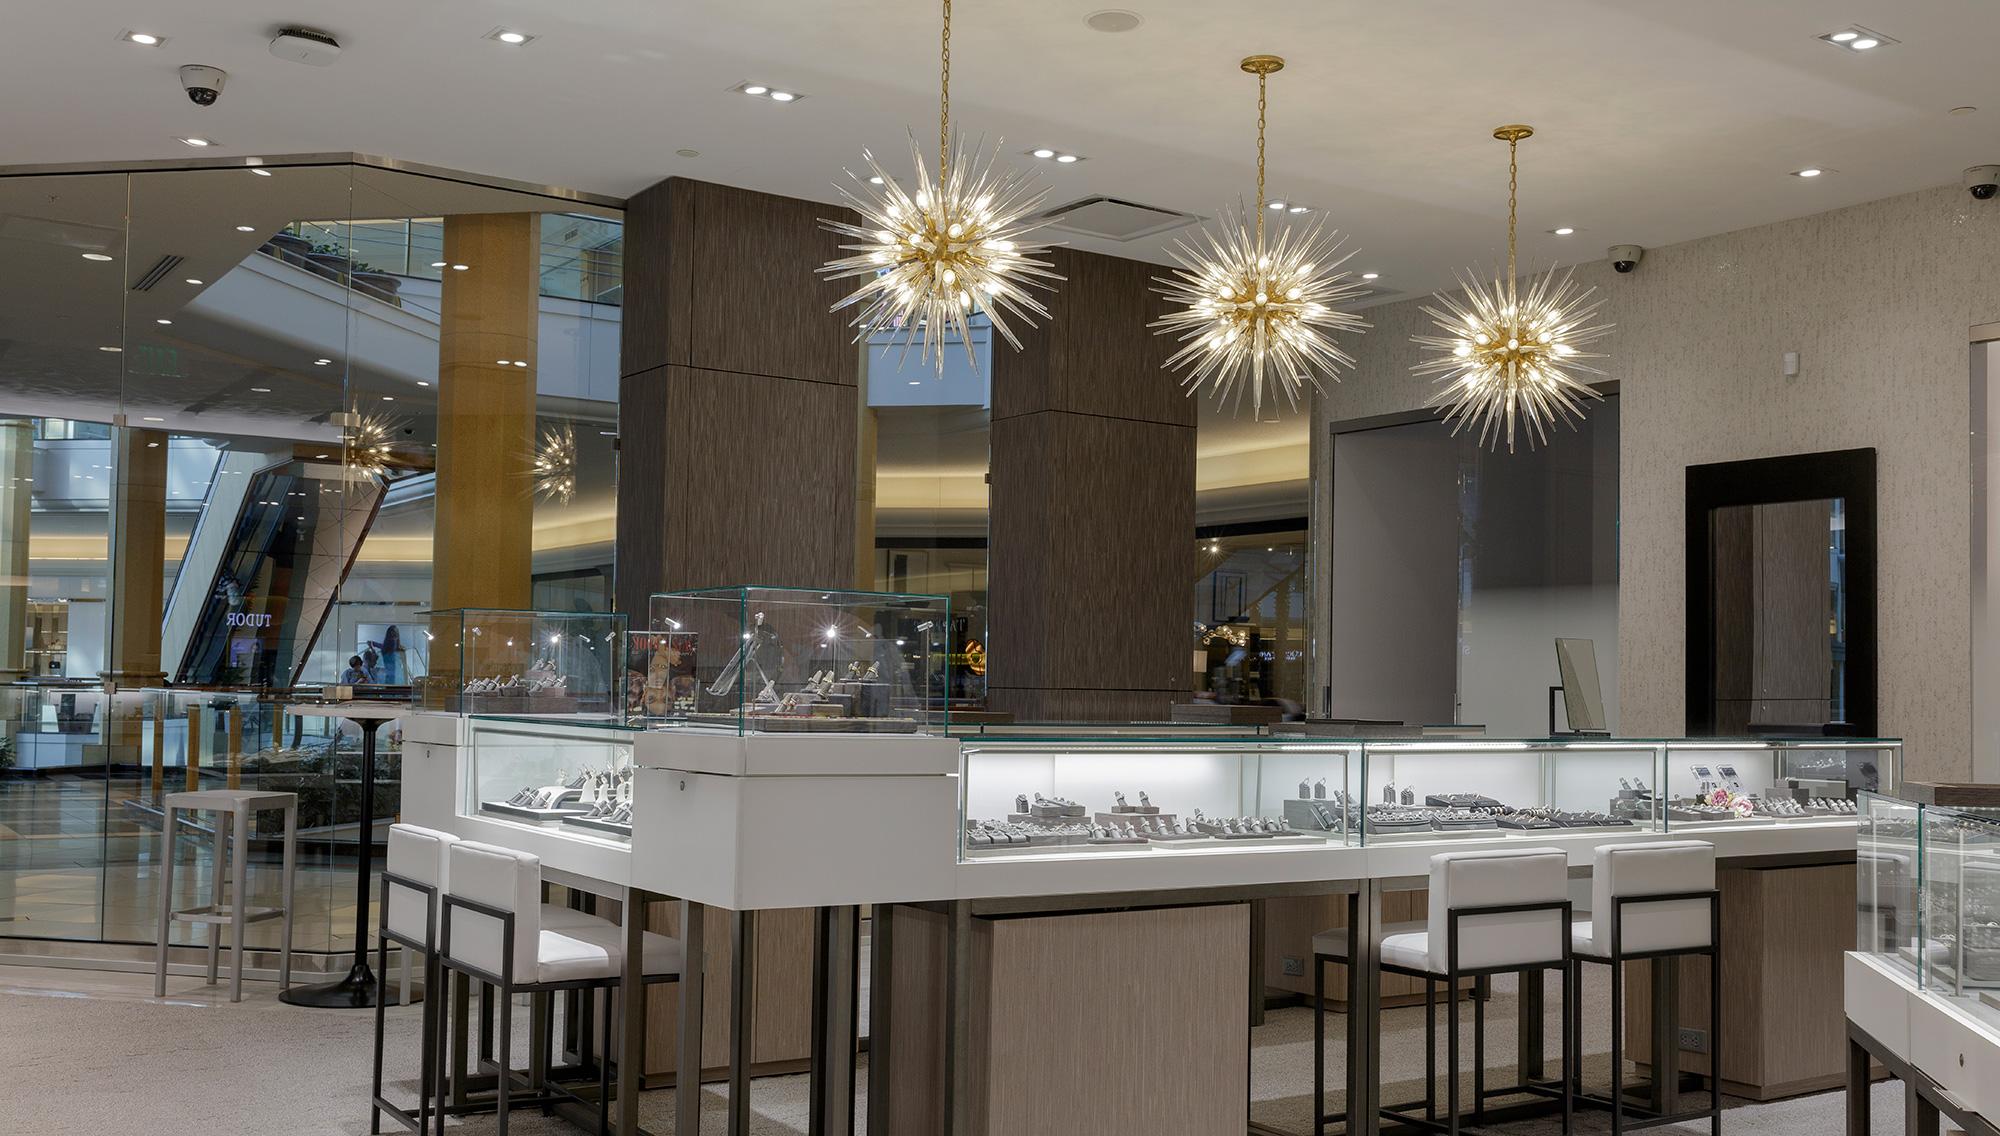 A Major Renovation Brought This Jewelry Store Closer to Its Customers